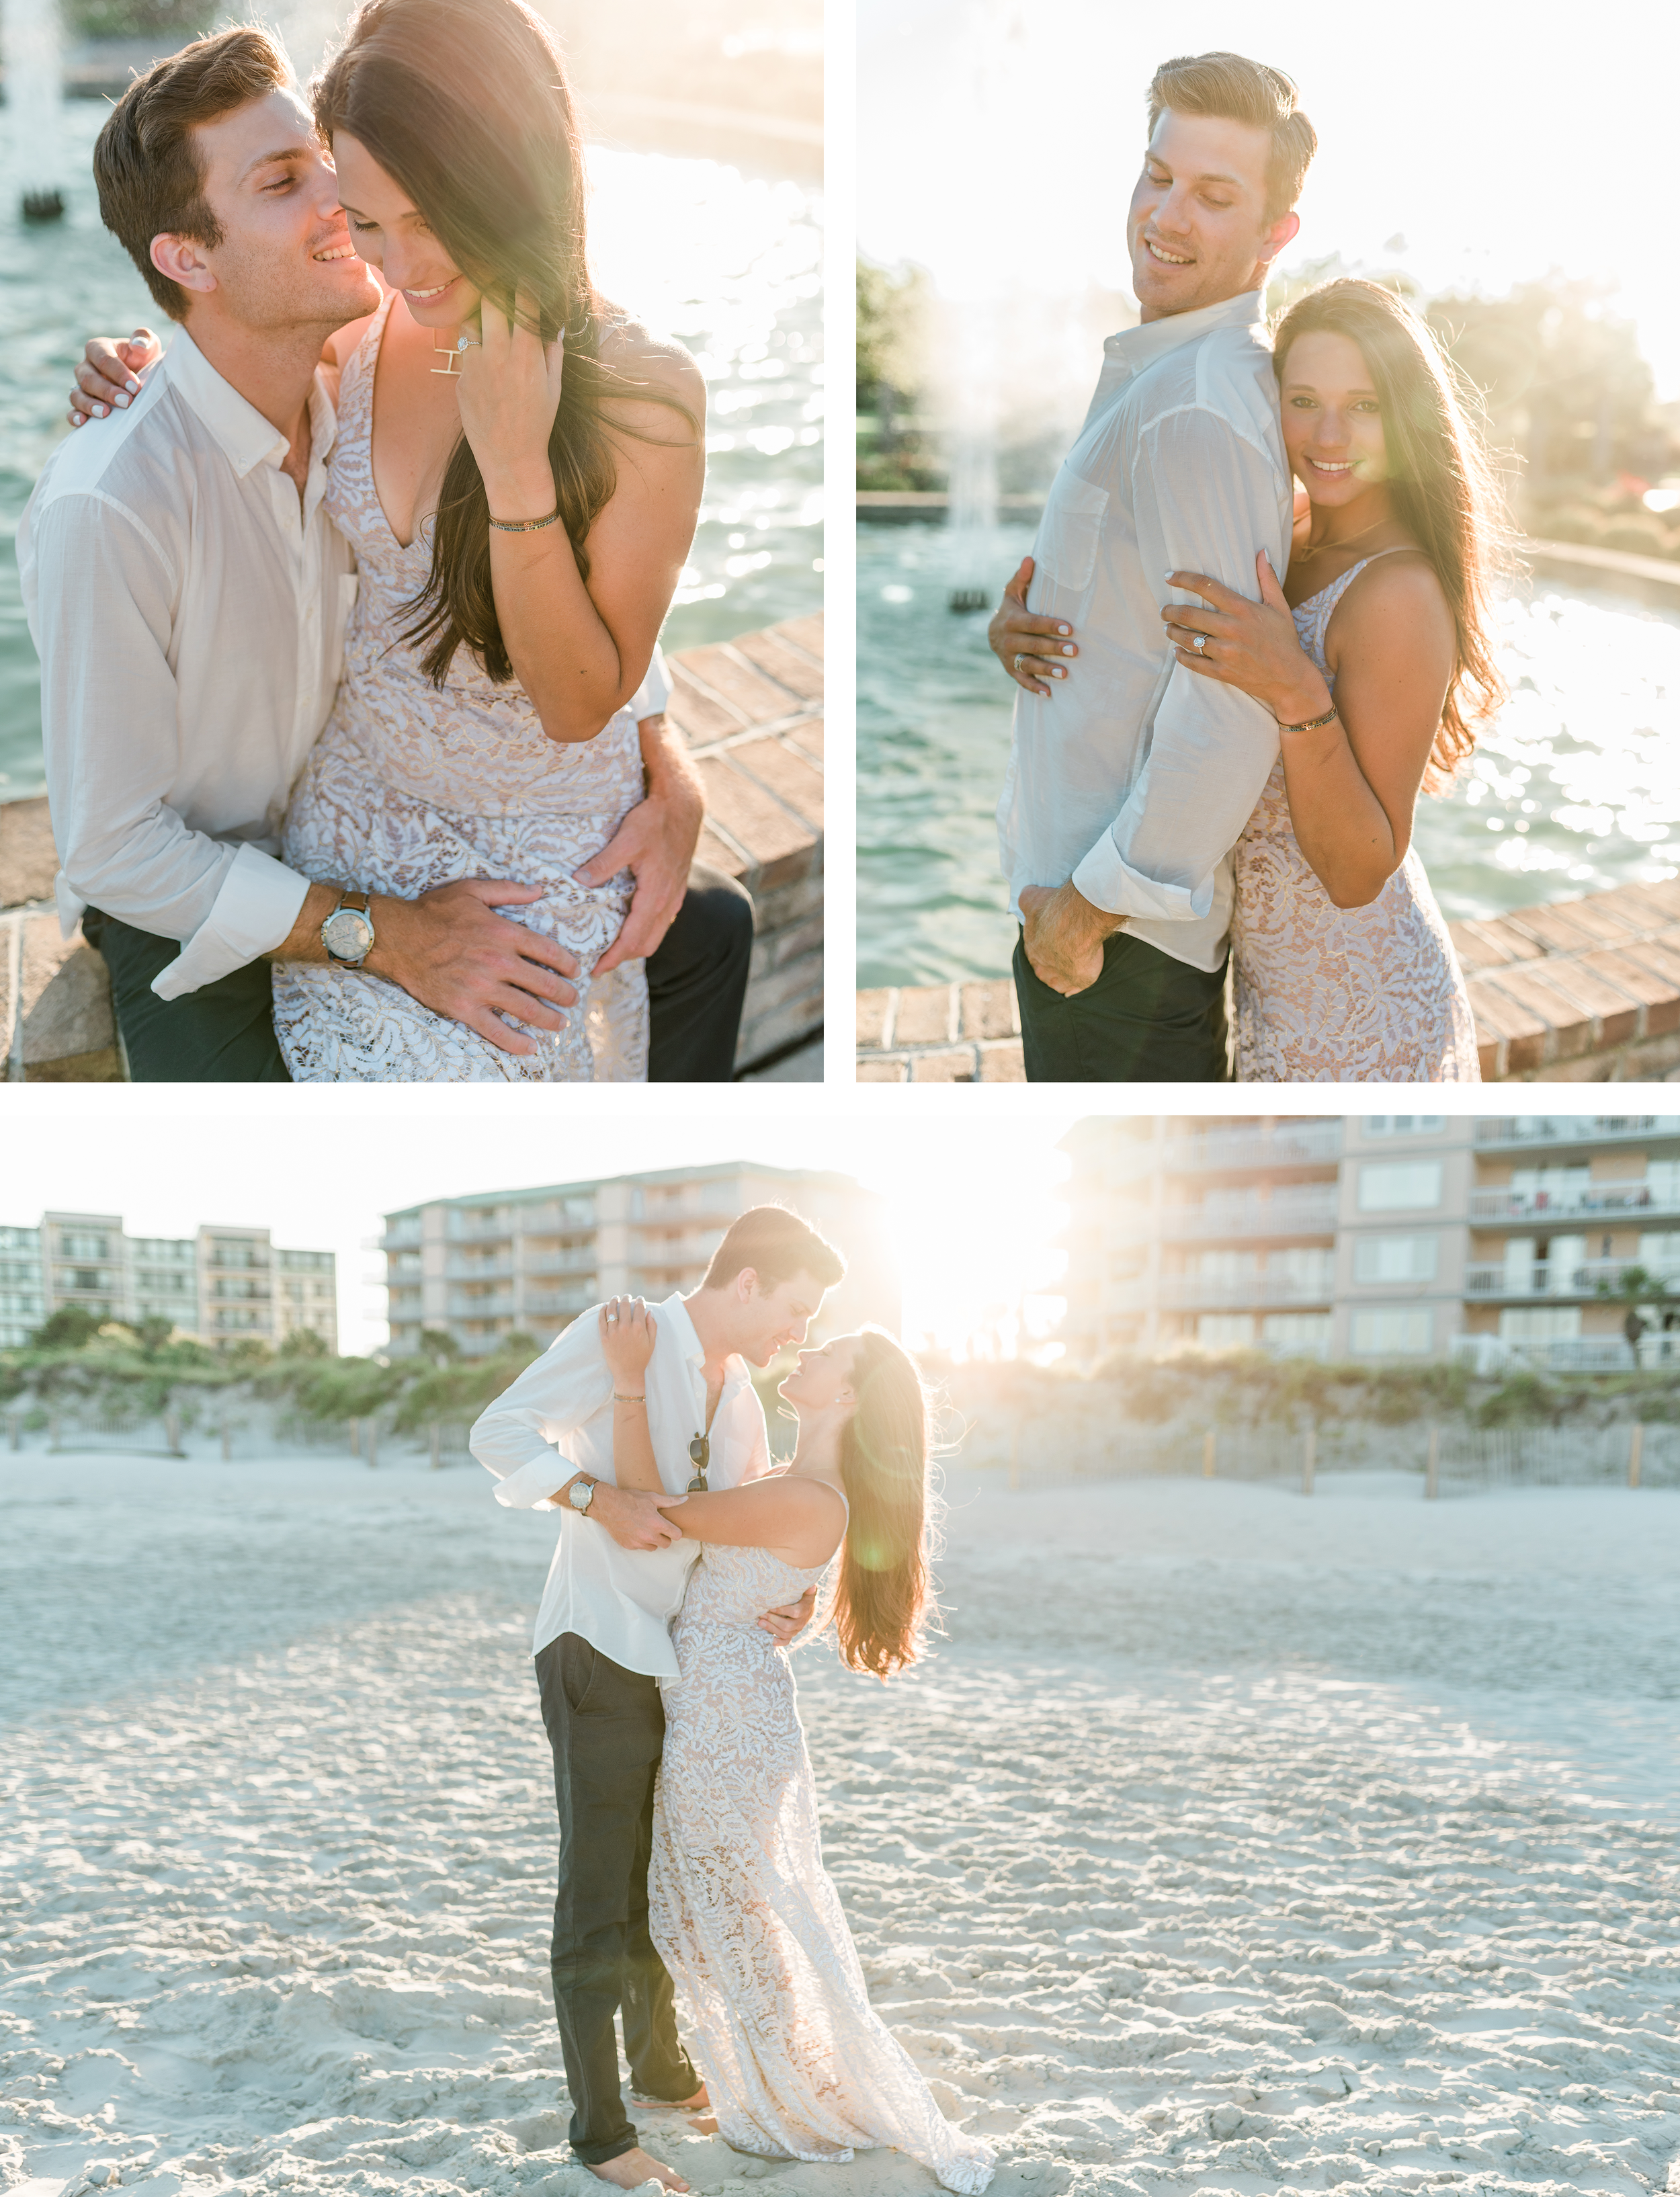 Evan Haley Engagement_Pawleys Island SC_Kristen Paige Photography_Gallery 10.png